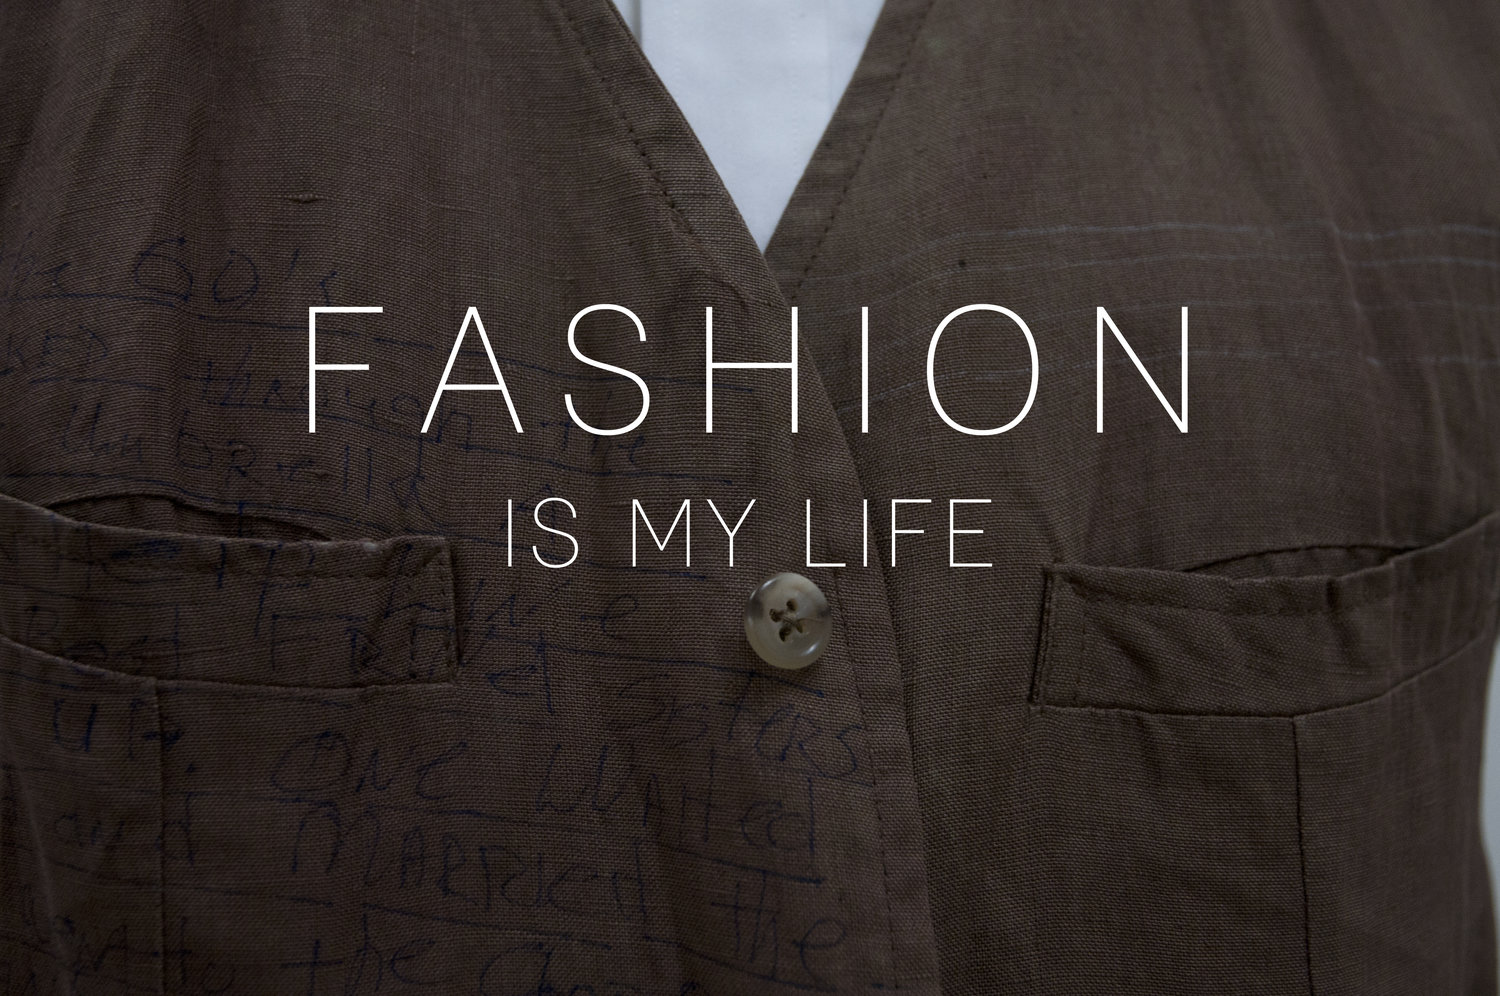 c8426cf3b Fashion is My Life — Dr. Bill Russell